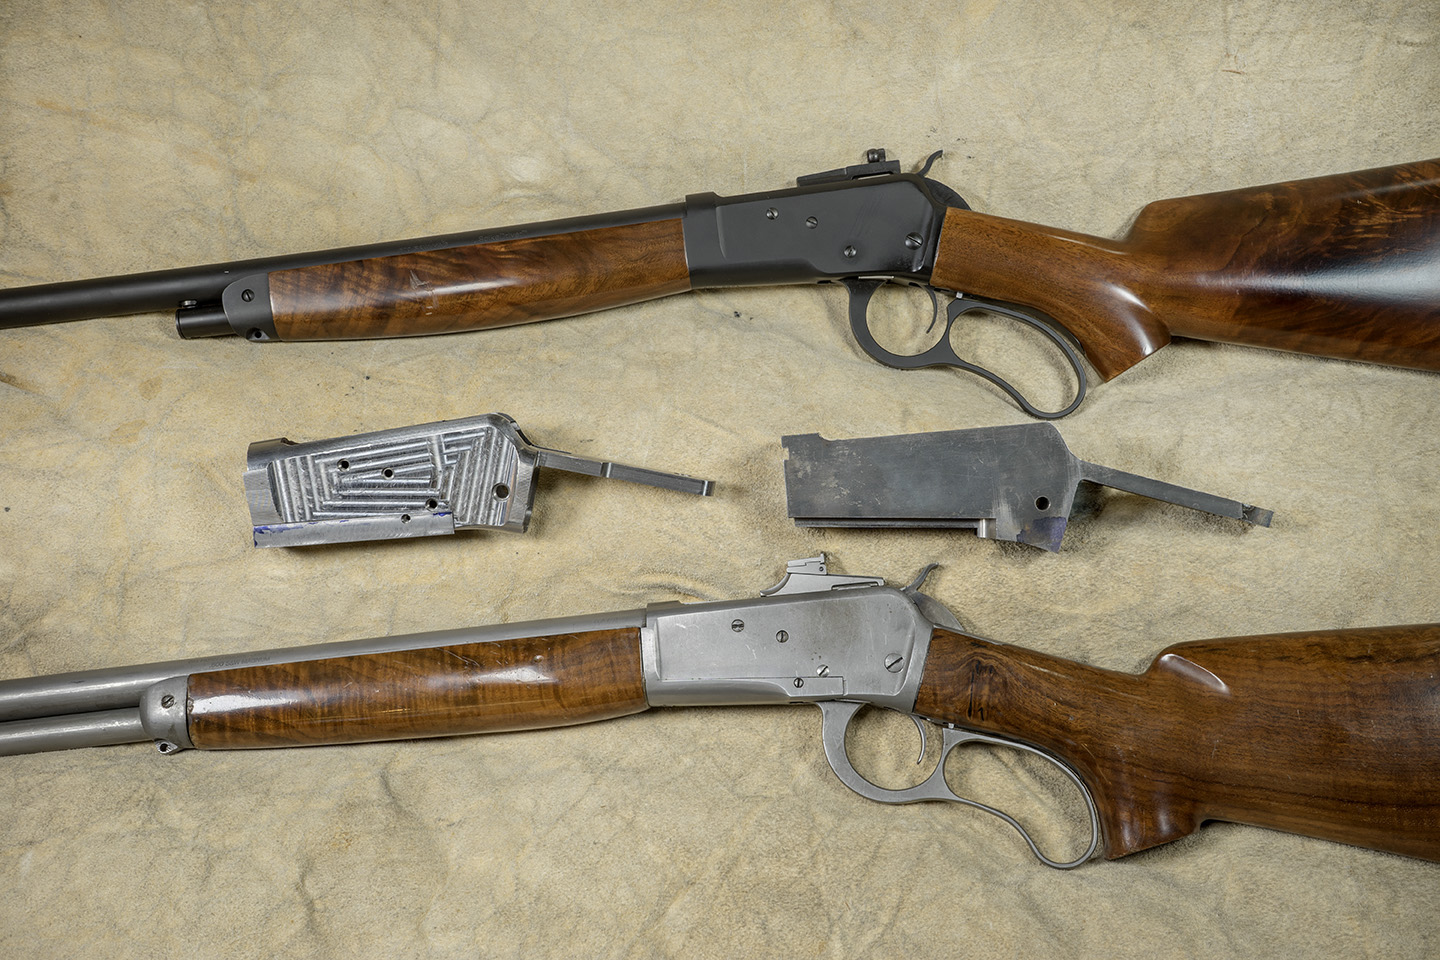 Big Horn Armory Donates Big Bore Lever Action Guns to NRA National Firearms Museum